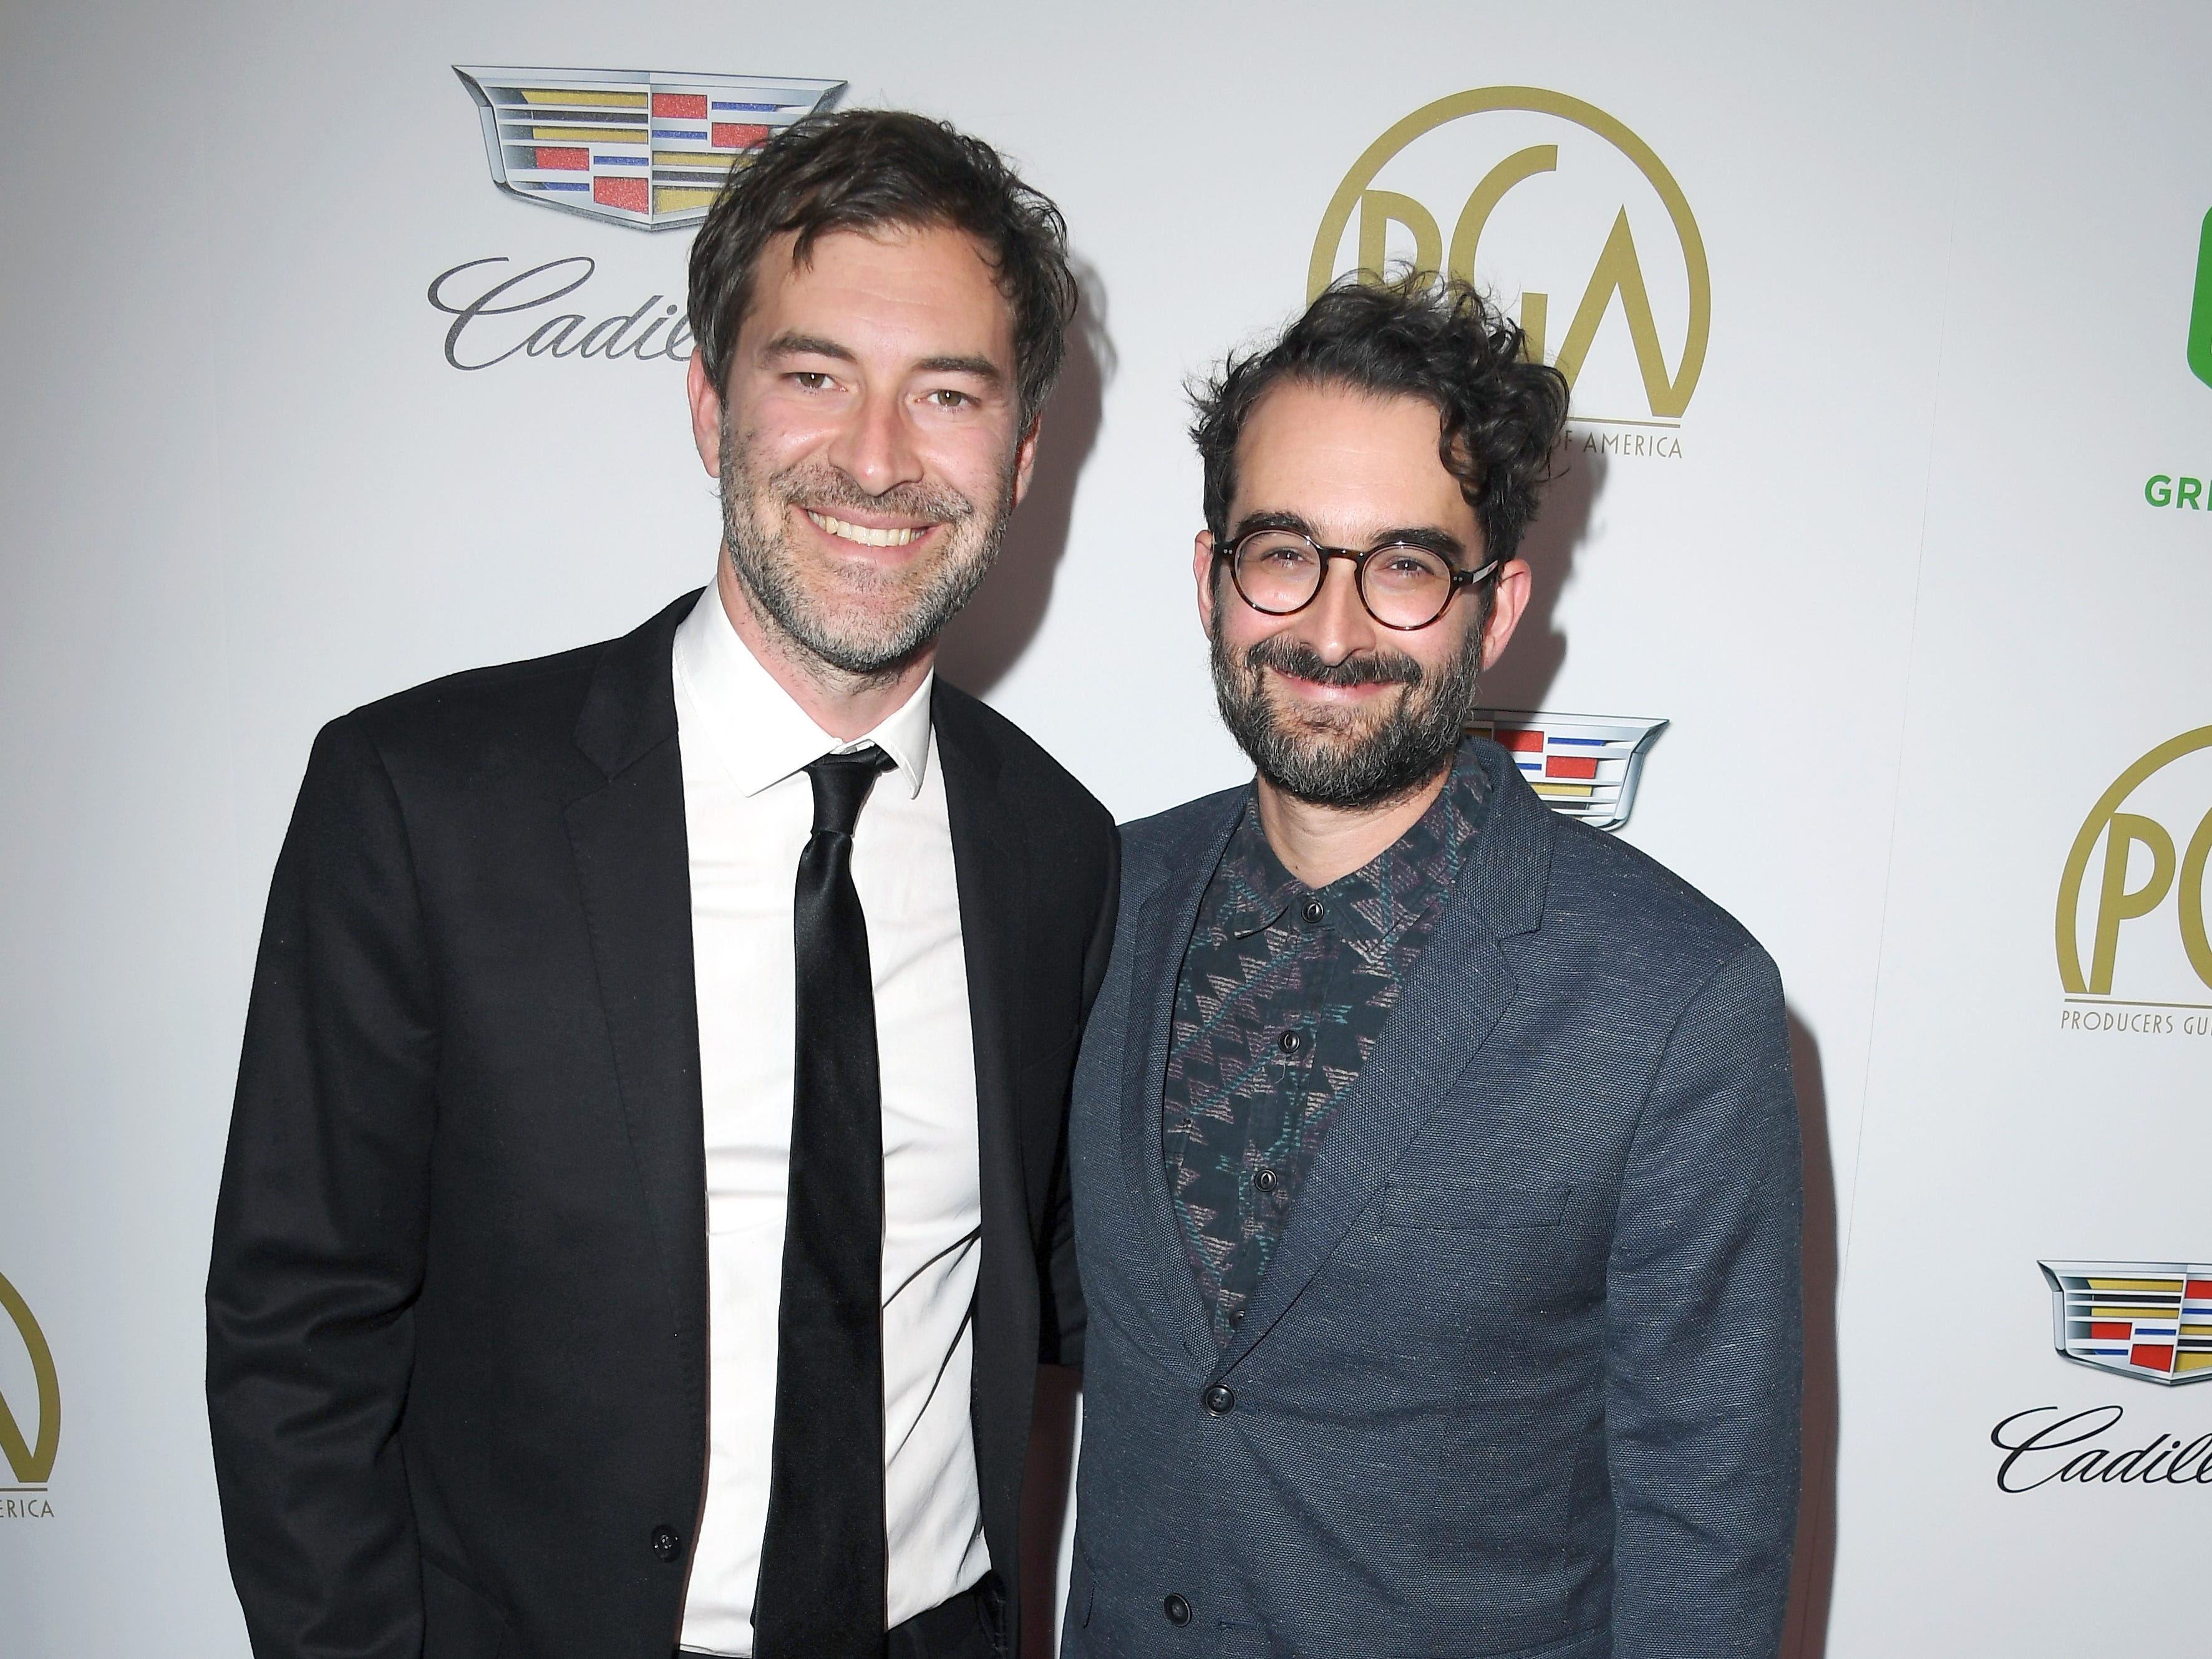 BEVERLY HILLS, CA - JANUARY 19:  Mark Duplass (L) and Jay Duplass attend the 30th annual Producers Guild Awards at The Beverly Hilton Hotel on January 19, 2019 in Beverly Hills, California.  (Photo by Steve Granitz/WireImage,) ORG XMIT: 775277375 ORIG FILE ID: 1085405320